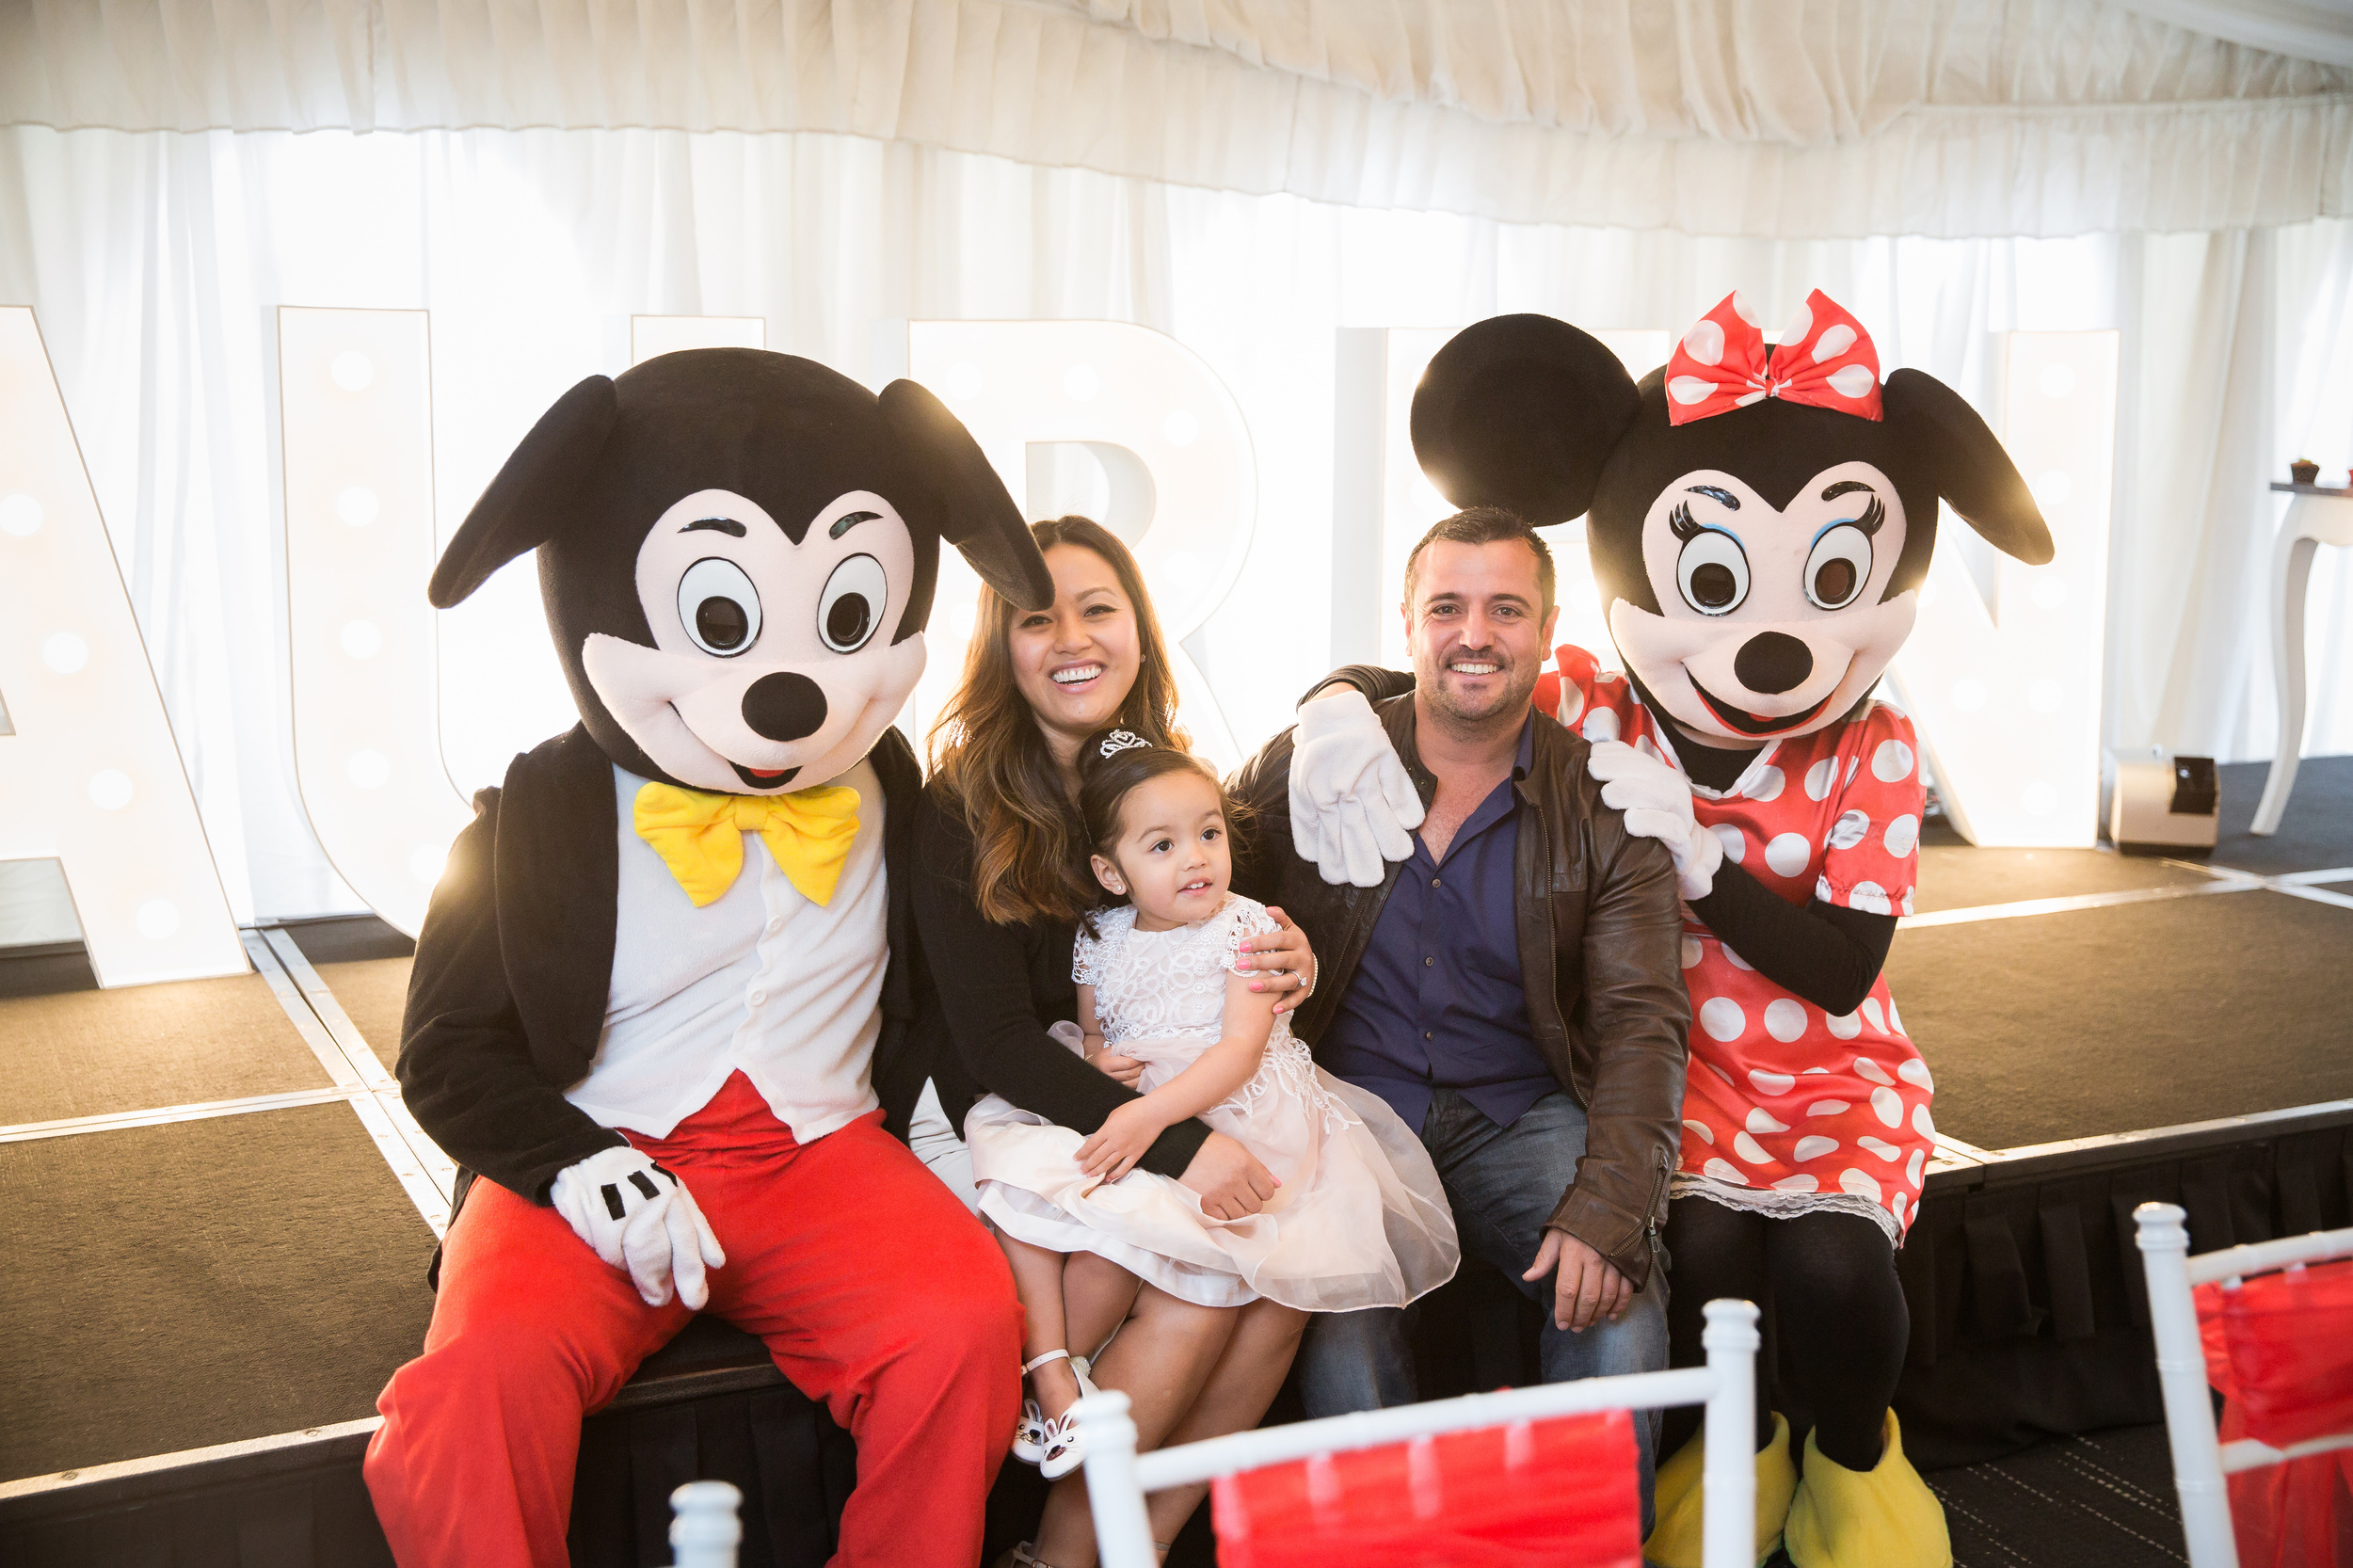 Parents Defend Throwing Daughter a $39,000 Disney Themed 3rd Birthday Party